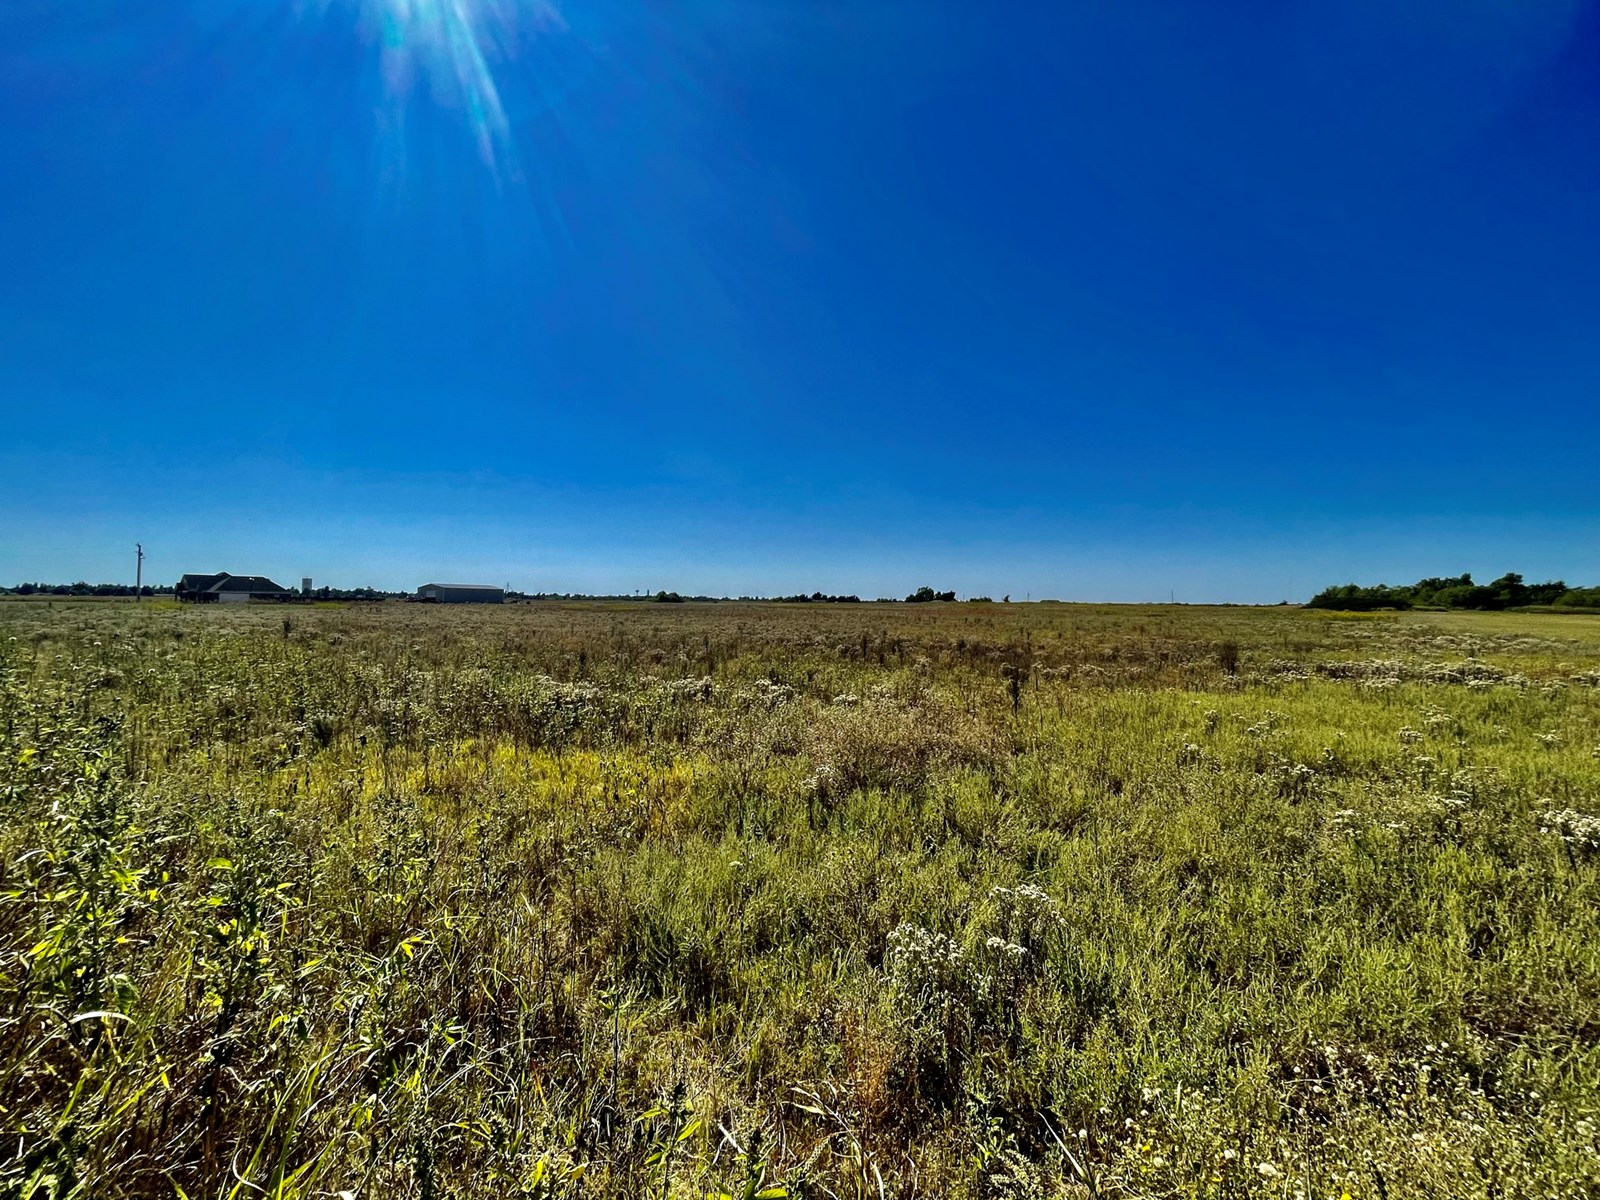 Crescent, Oklahoma - 29 Acres with Highway Frontage!